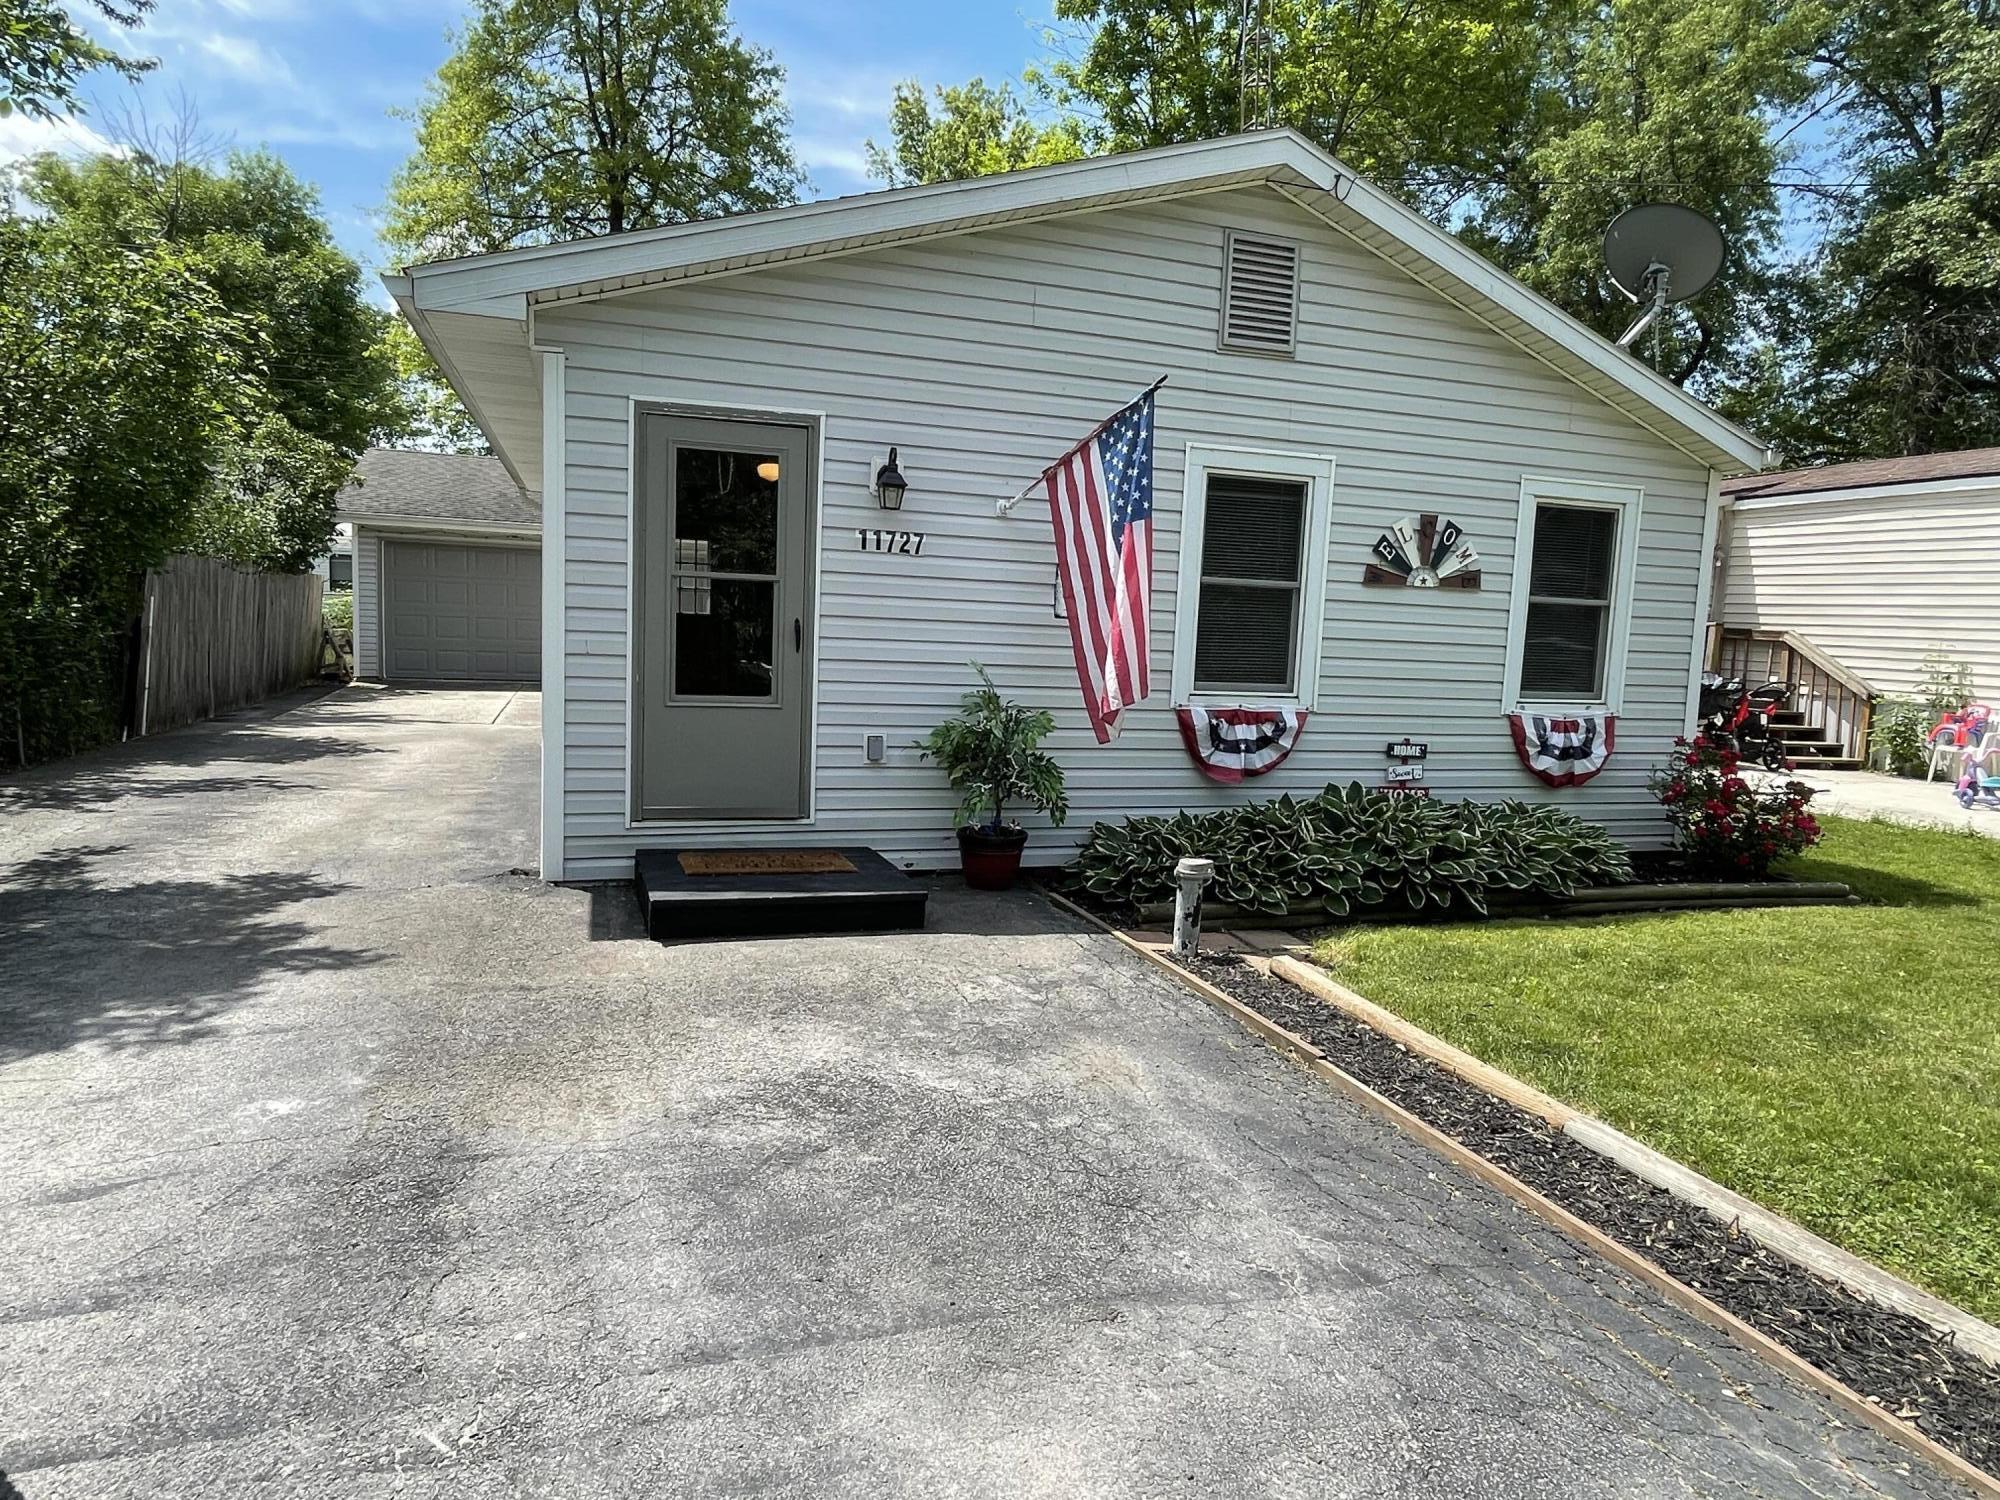 11727 Williams Lakeview, OH